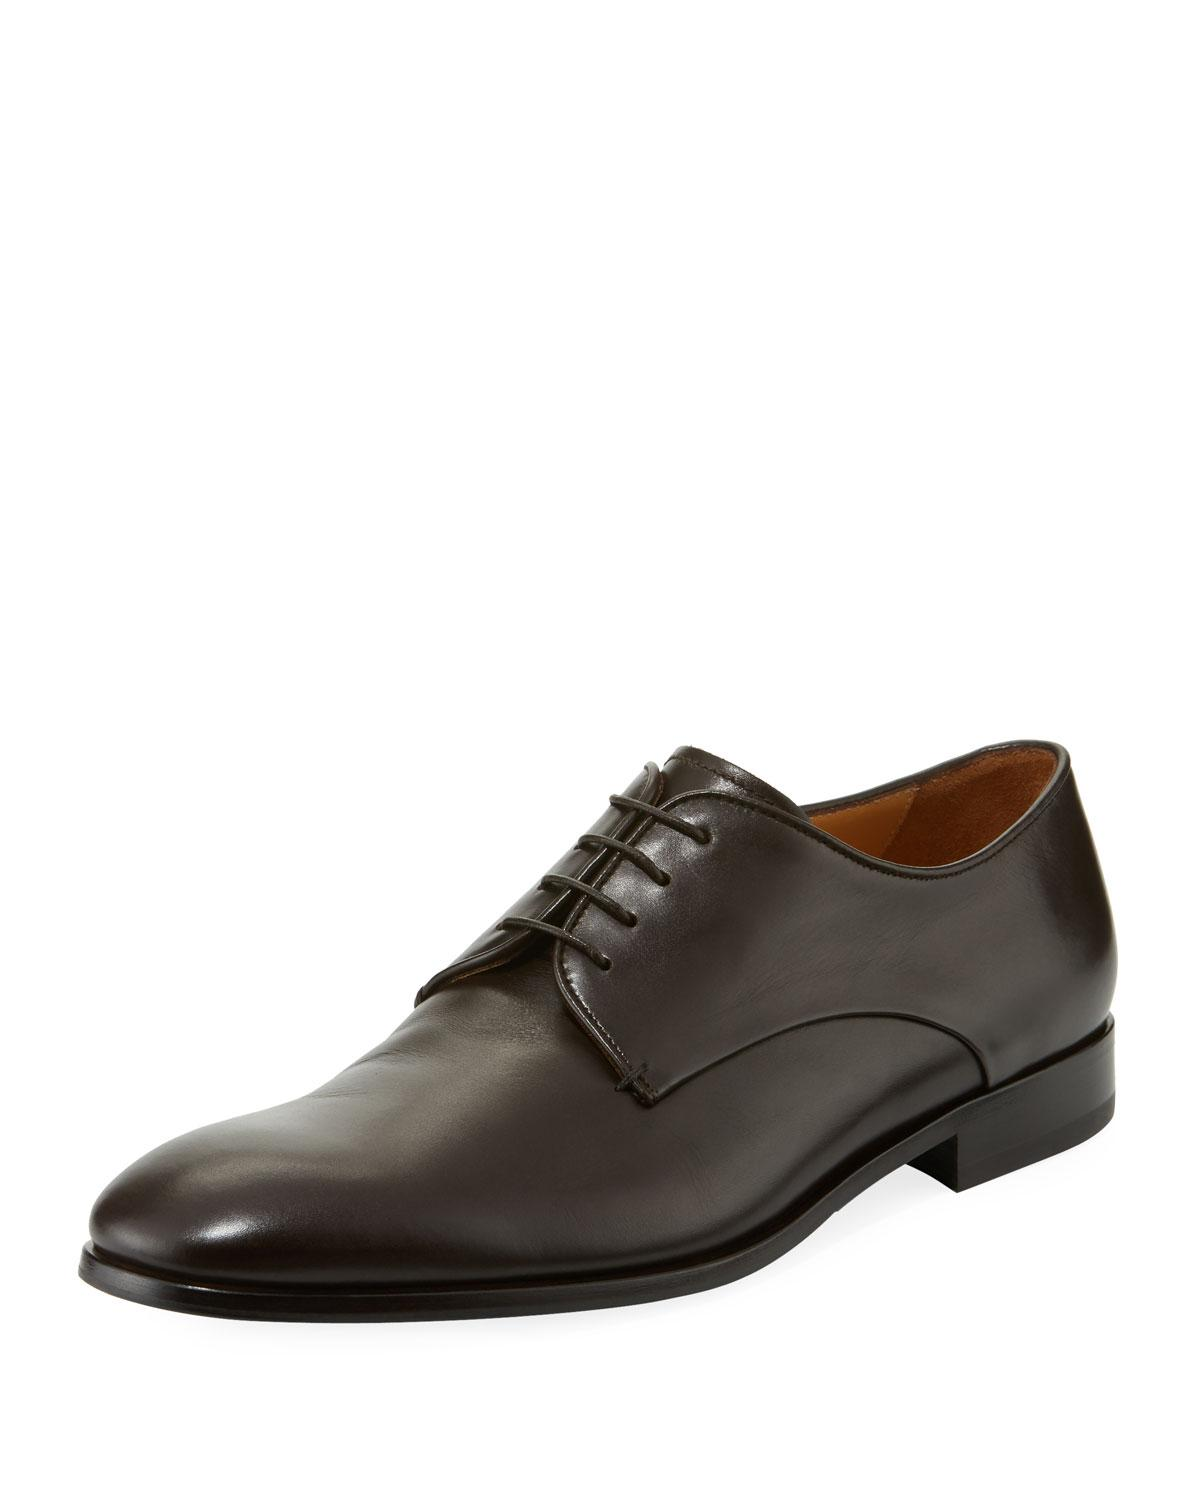 Giorgio Armani Smooth Leather Dress Shoe In Brown